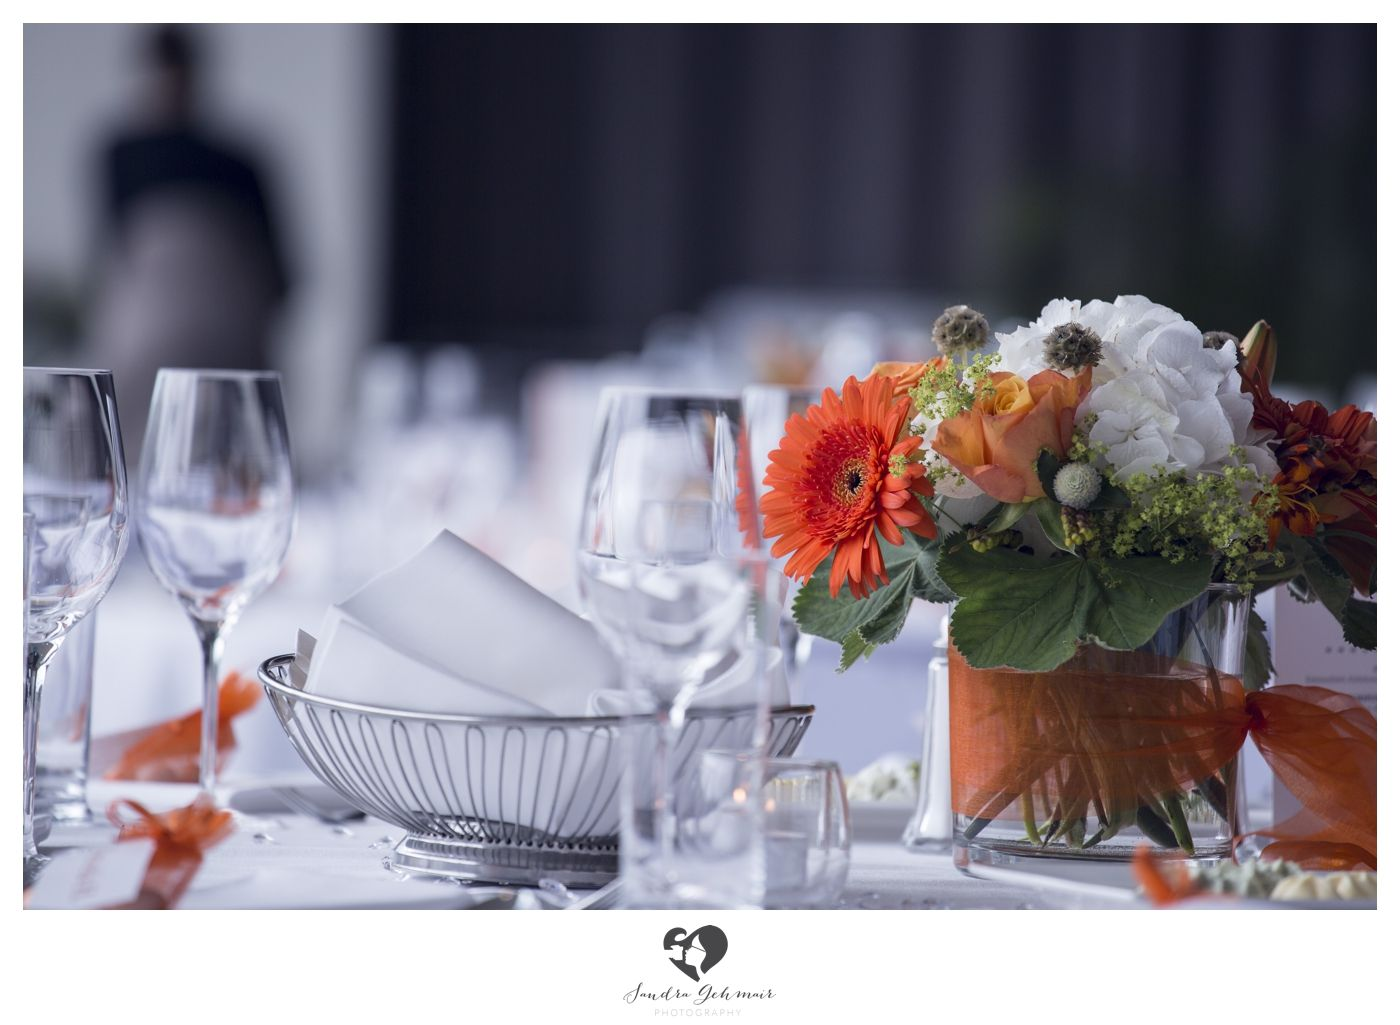 #decoration #decorationtips #tips #interior #wedding #hochzeit #weddingday #weddinghour #bridetobe #clean #white #highkey #interesting #dekotips #photography #photo #orange #orangeflowers #flowers #rosen #deko #glas #glass #wine #fresh